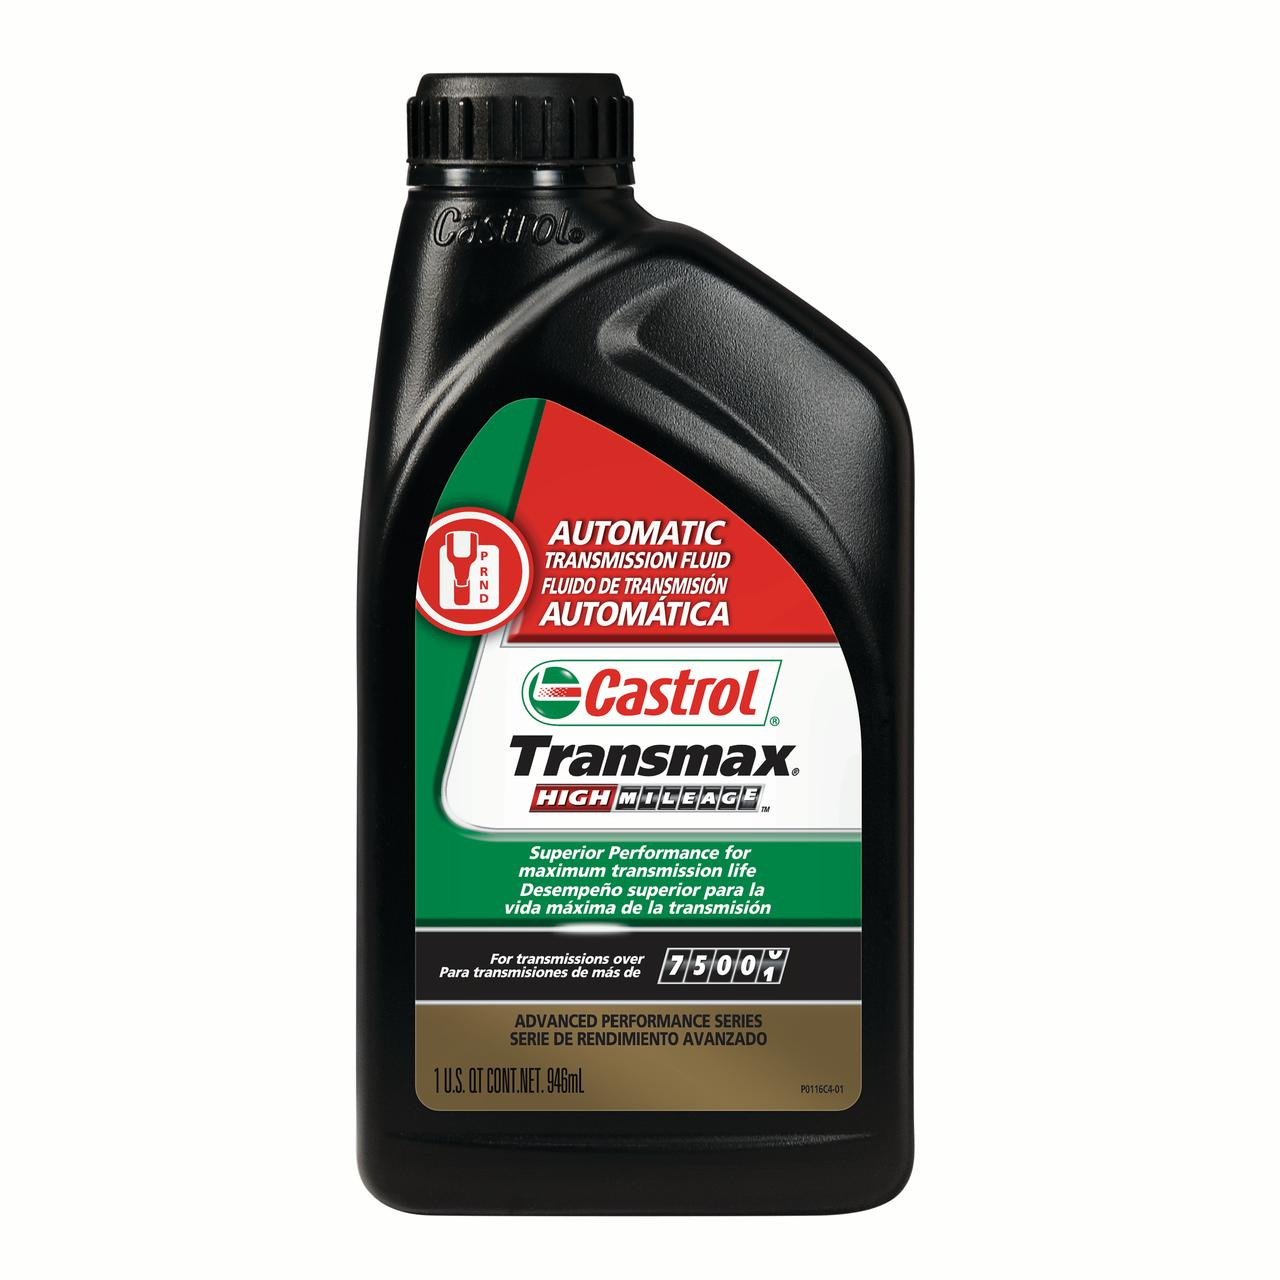 Castrol Transmax High Mileage Automatic Transmission Fluid, 1 QT